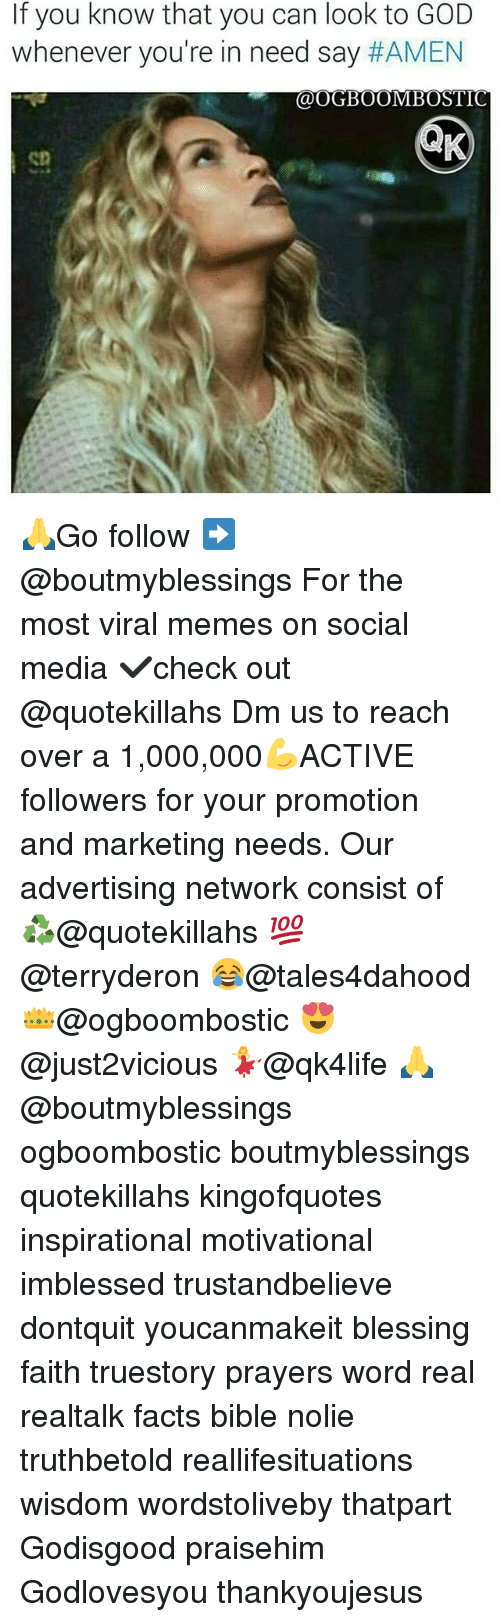 Facts, God, and Memes: If you know that you can look to GOD  whenever you're in need say  #AMEN  i@OGBOOMBOSTIC 🙏Go follow ➡@boutmyblessings For the most viral memes on social media ✔check out @quotekillahs Dm us to reach over a 1,000,000💪ACTIVE followers for your promotion and marketing needs. Our advertising network consist of ♻@quotekillahs 💯@terryderon 😂@tales4dahood 👑@ogboombostic 😍@just2vicious 💃@qk4life 🙏@boutmyblessings ogboombostic boutmyblessings quotekillahs kingofquotes inspirational motivational imblessed trustandbelieve dontquit youcanmakeit blessing faith truestory prayers word real realtalk facts bible nolie truthbetold reallifesituations wisdom wordstoliveby thatpart Godisgood praisehim Godlovesyou thankyoujesus